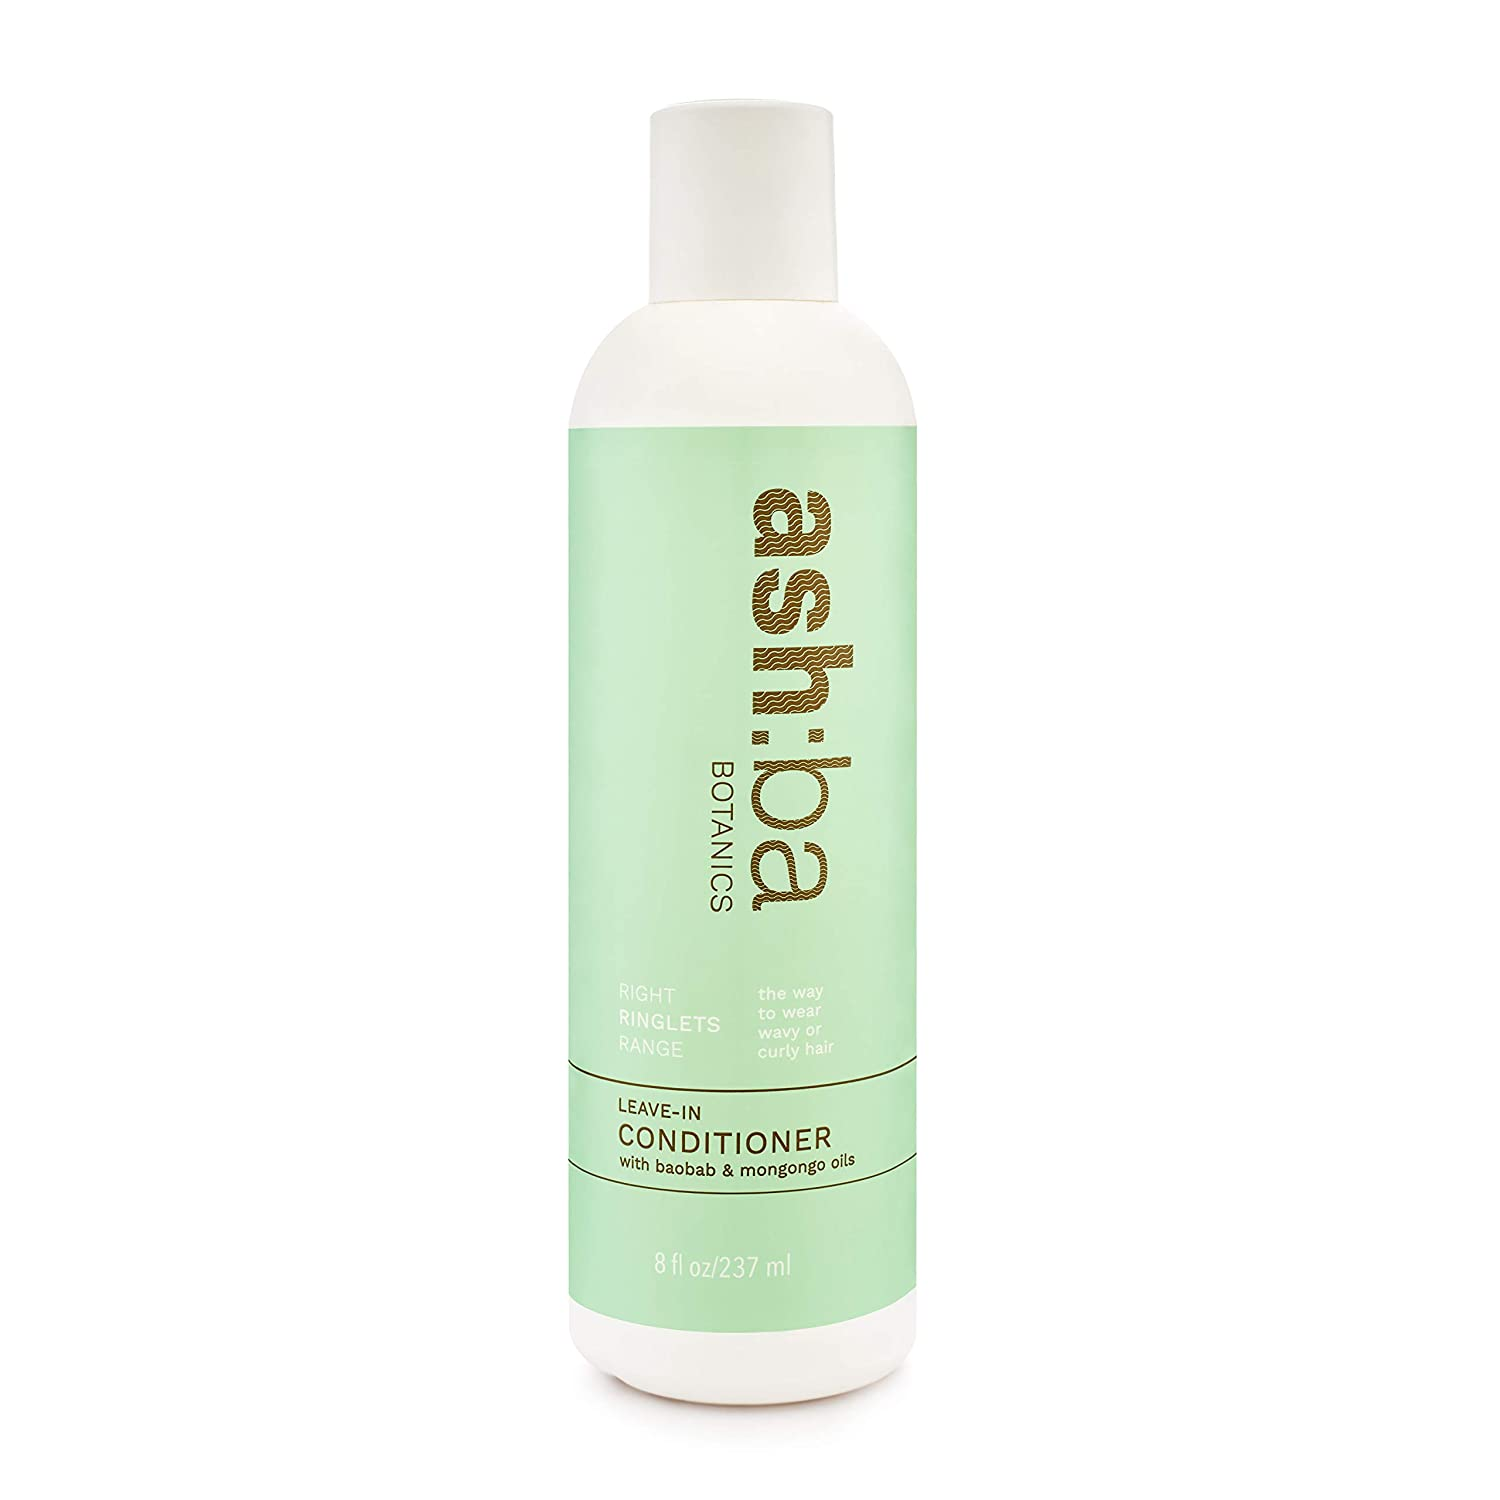 Ashba Botanics 1 year warranty Right Ringlets Leave-in Popular Curly Conditioner W for